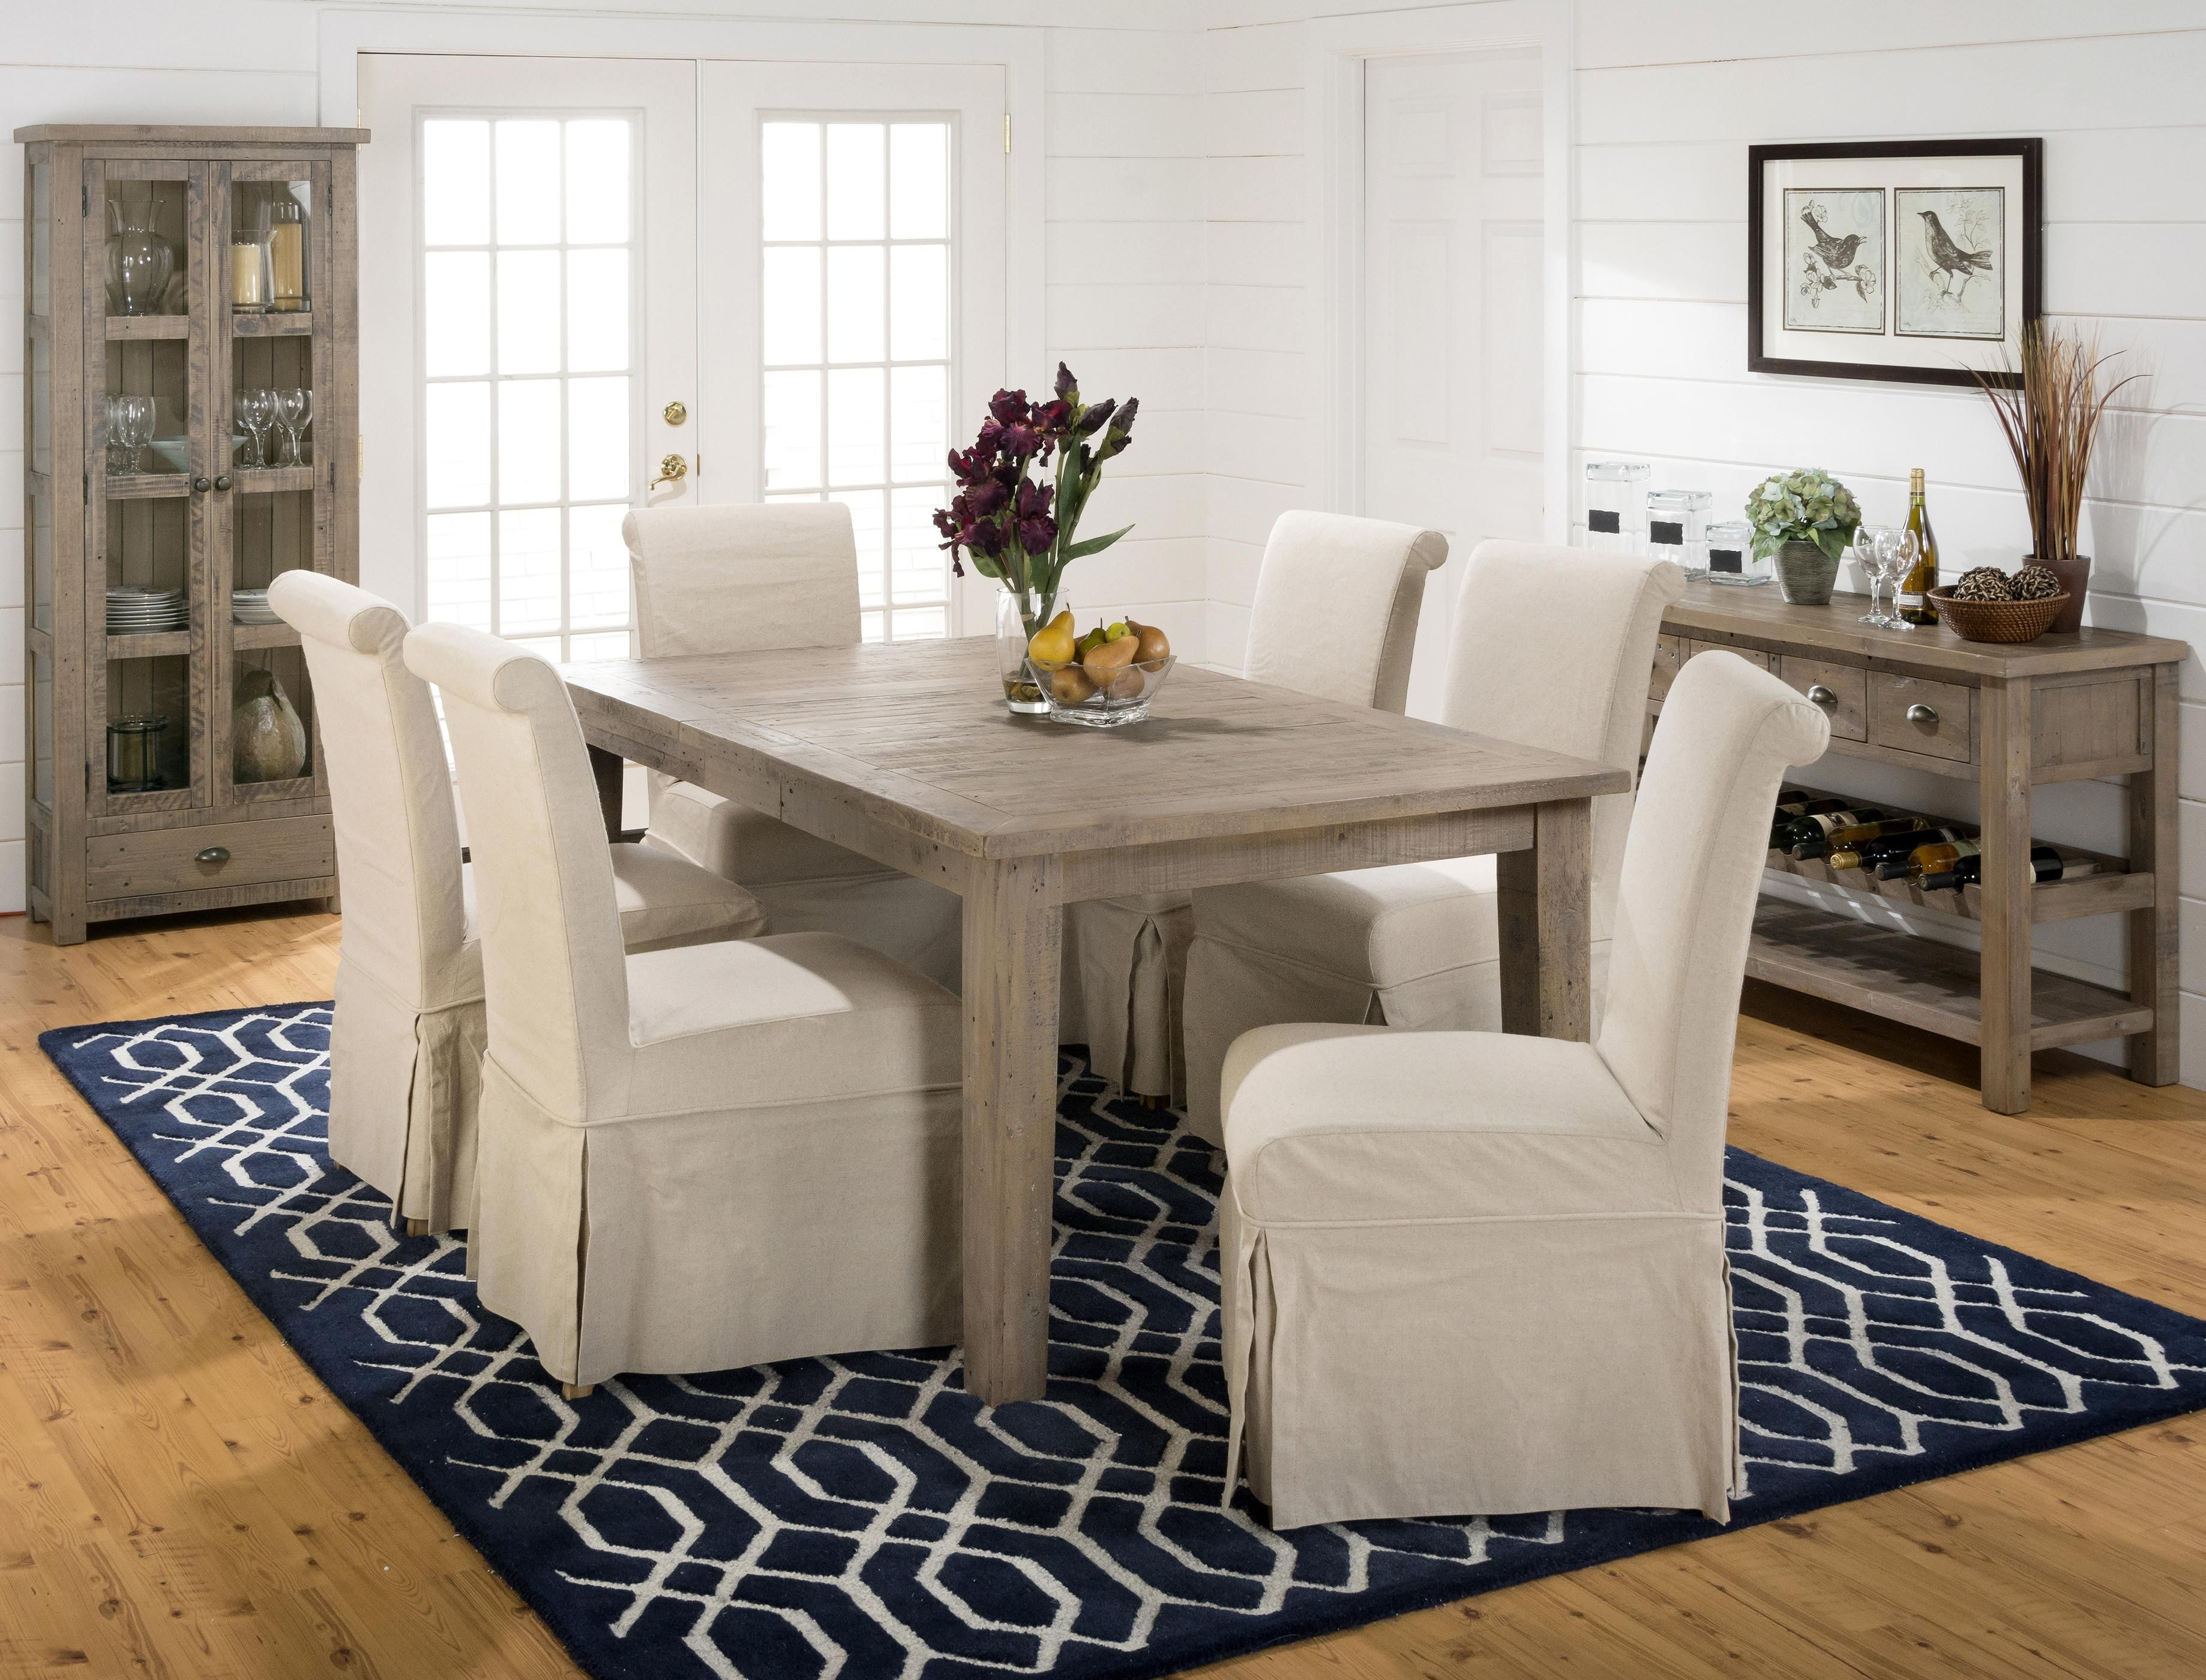 Slater Mill Pine Dining Table Made From Reclaimed Pinejofran Best Dining Room Sets In Ct Inspiration